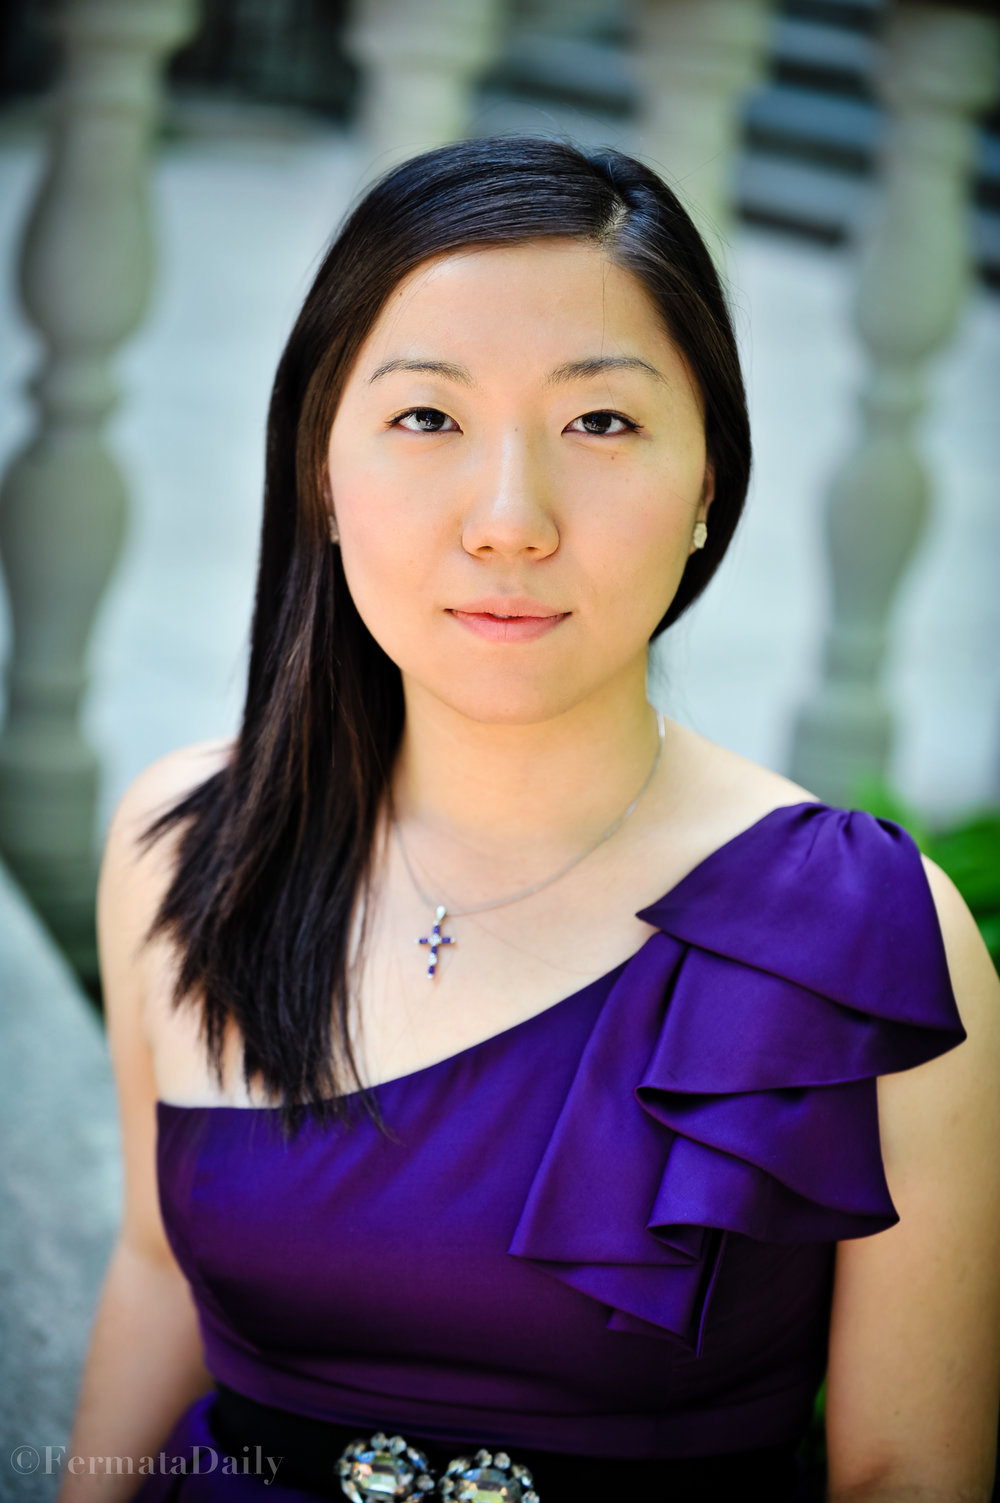 MARIA HWA YEONG JUNG - Is an active vocal collaborative pianist from Coquitlam, BC. She is a faculty member at Vancouver Academy of Music, working as a vocal coach for college department voice students and holds a piano studio at Place des Arts in Coquitlam. She also made her Vancouver Debut with Music Friends concert series last March in collaboration with vocal trio Heliotrope and has collaborated with many other artists in Vancouver area ever since.Before her recent move to the Greater Vancouver area, Maria has worked at University of Toronto Faculty of Music as a vocal coach and staff accompanist, and accompanied the renowned Oriana Women's Chorus and Acquired Taste Choir with conductor Mitchell Pady. She also worked as a music director and repetiteur for the Summer Opera Lyric Theater for the productions of Handel's Cesare, and Marschner's Der Vampyr.She is looking forward to her 2018-2019 season filled with concerts with Music Friends, 100th year WW1 Commemorative concert at Place des Arts, her debut recital for Vancouver Women's Musical Society with tenor, Lyndon Ladeur and making her Opera debut of Cosi fan Tutte with Opera Mariposa.